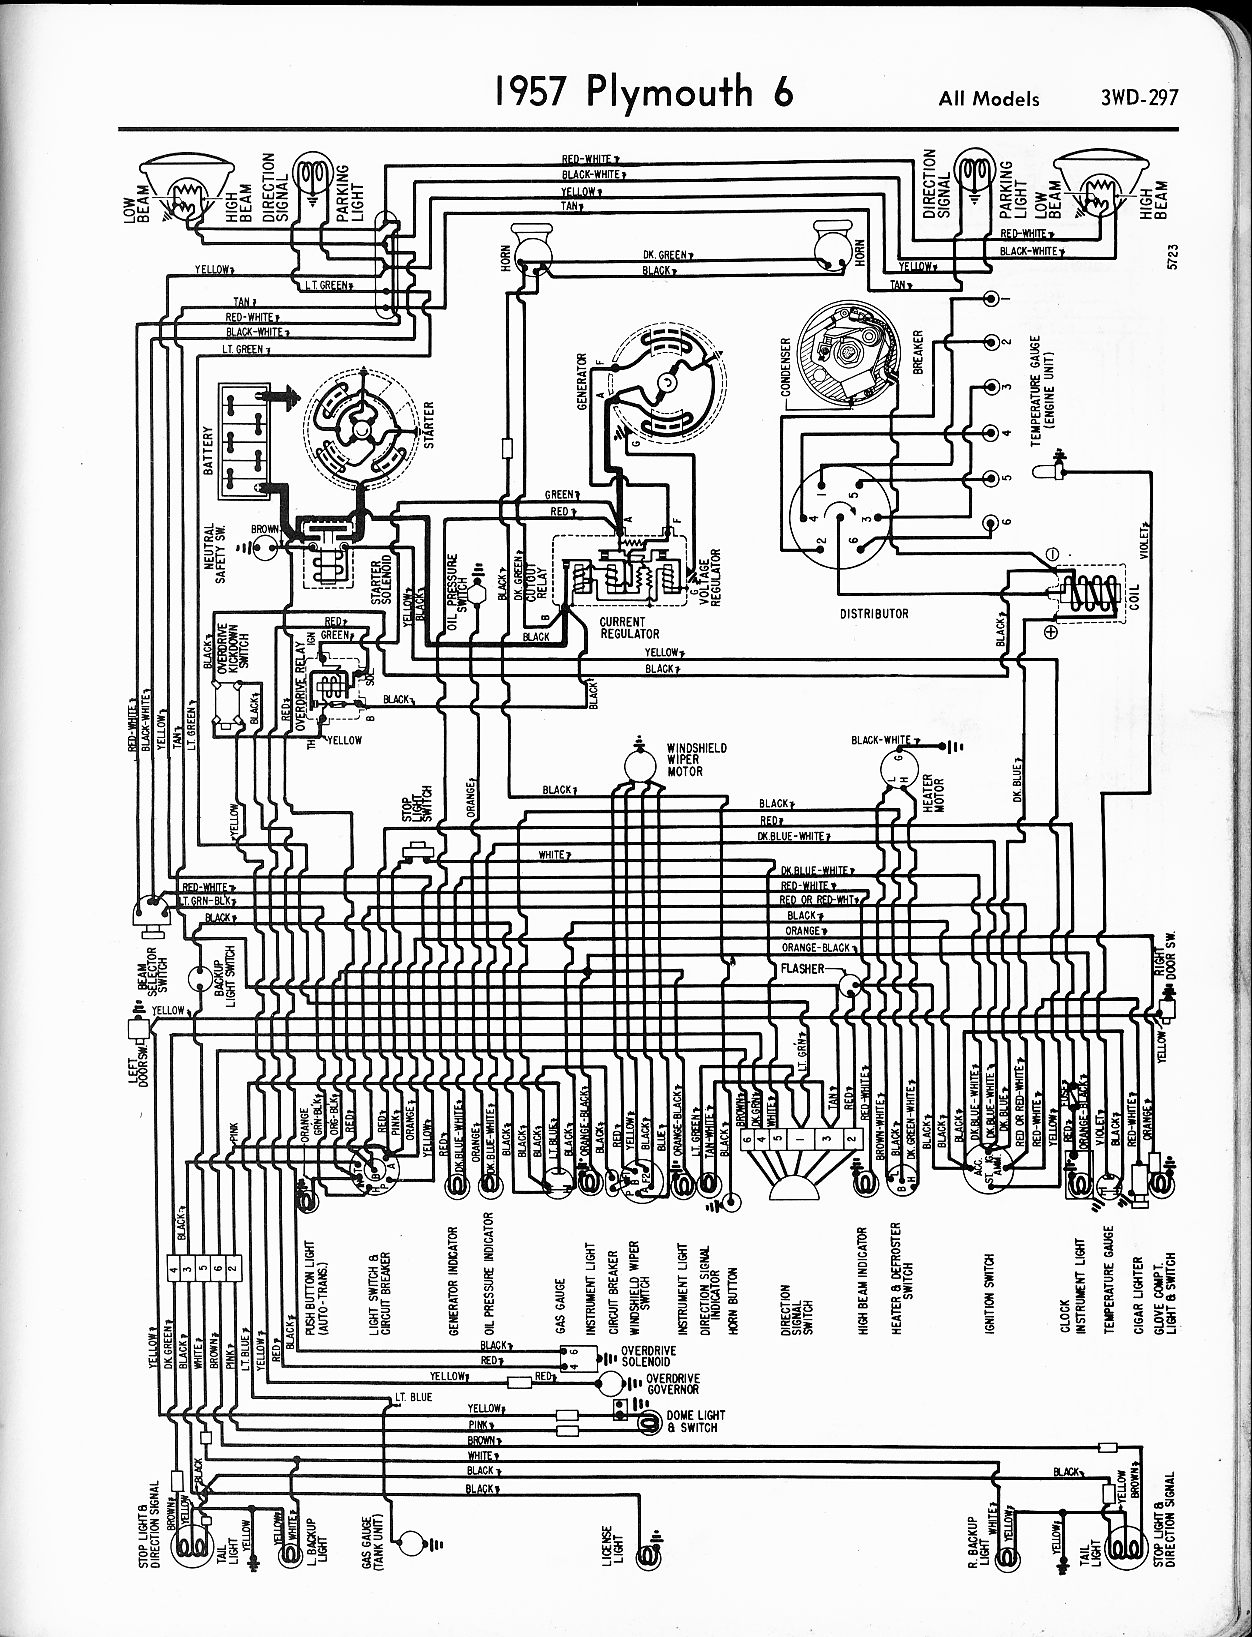 [wrg-9367] 79 plymouth volare wiring diagram 1977 plymouth volare wiring diagram 1968 plymouth satellite wiring diagram #9